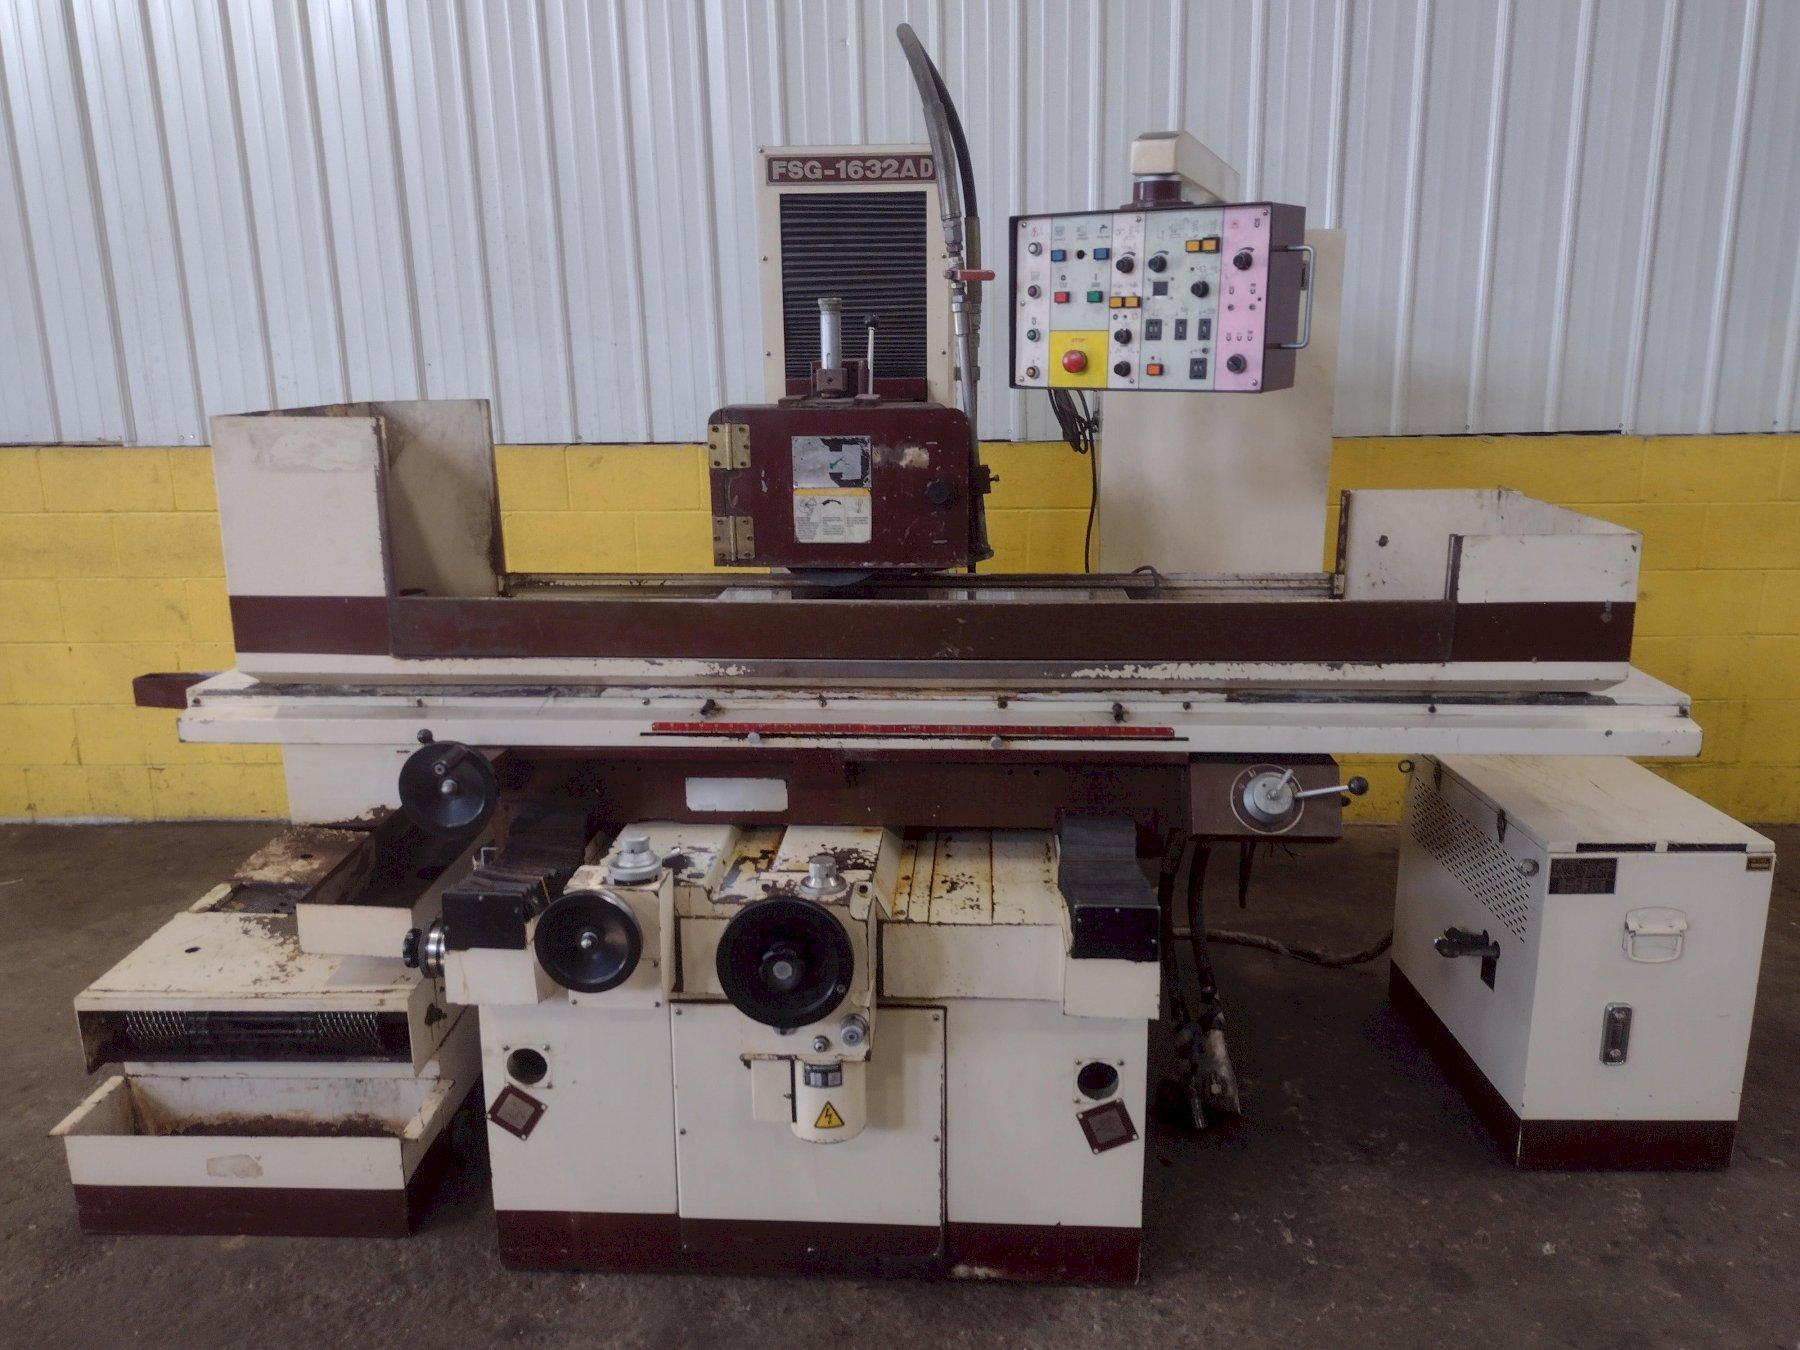 """16"""" x 32"""" CHEVALIER MODEL #FSG-1632AD AUTOMATIC HYDRAULIC HORIZONTAL SURFACE GRINDER: STOCK 15103"""